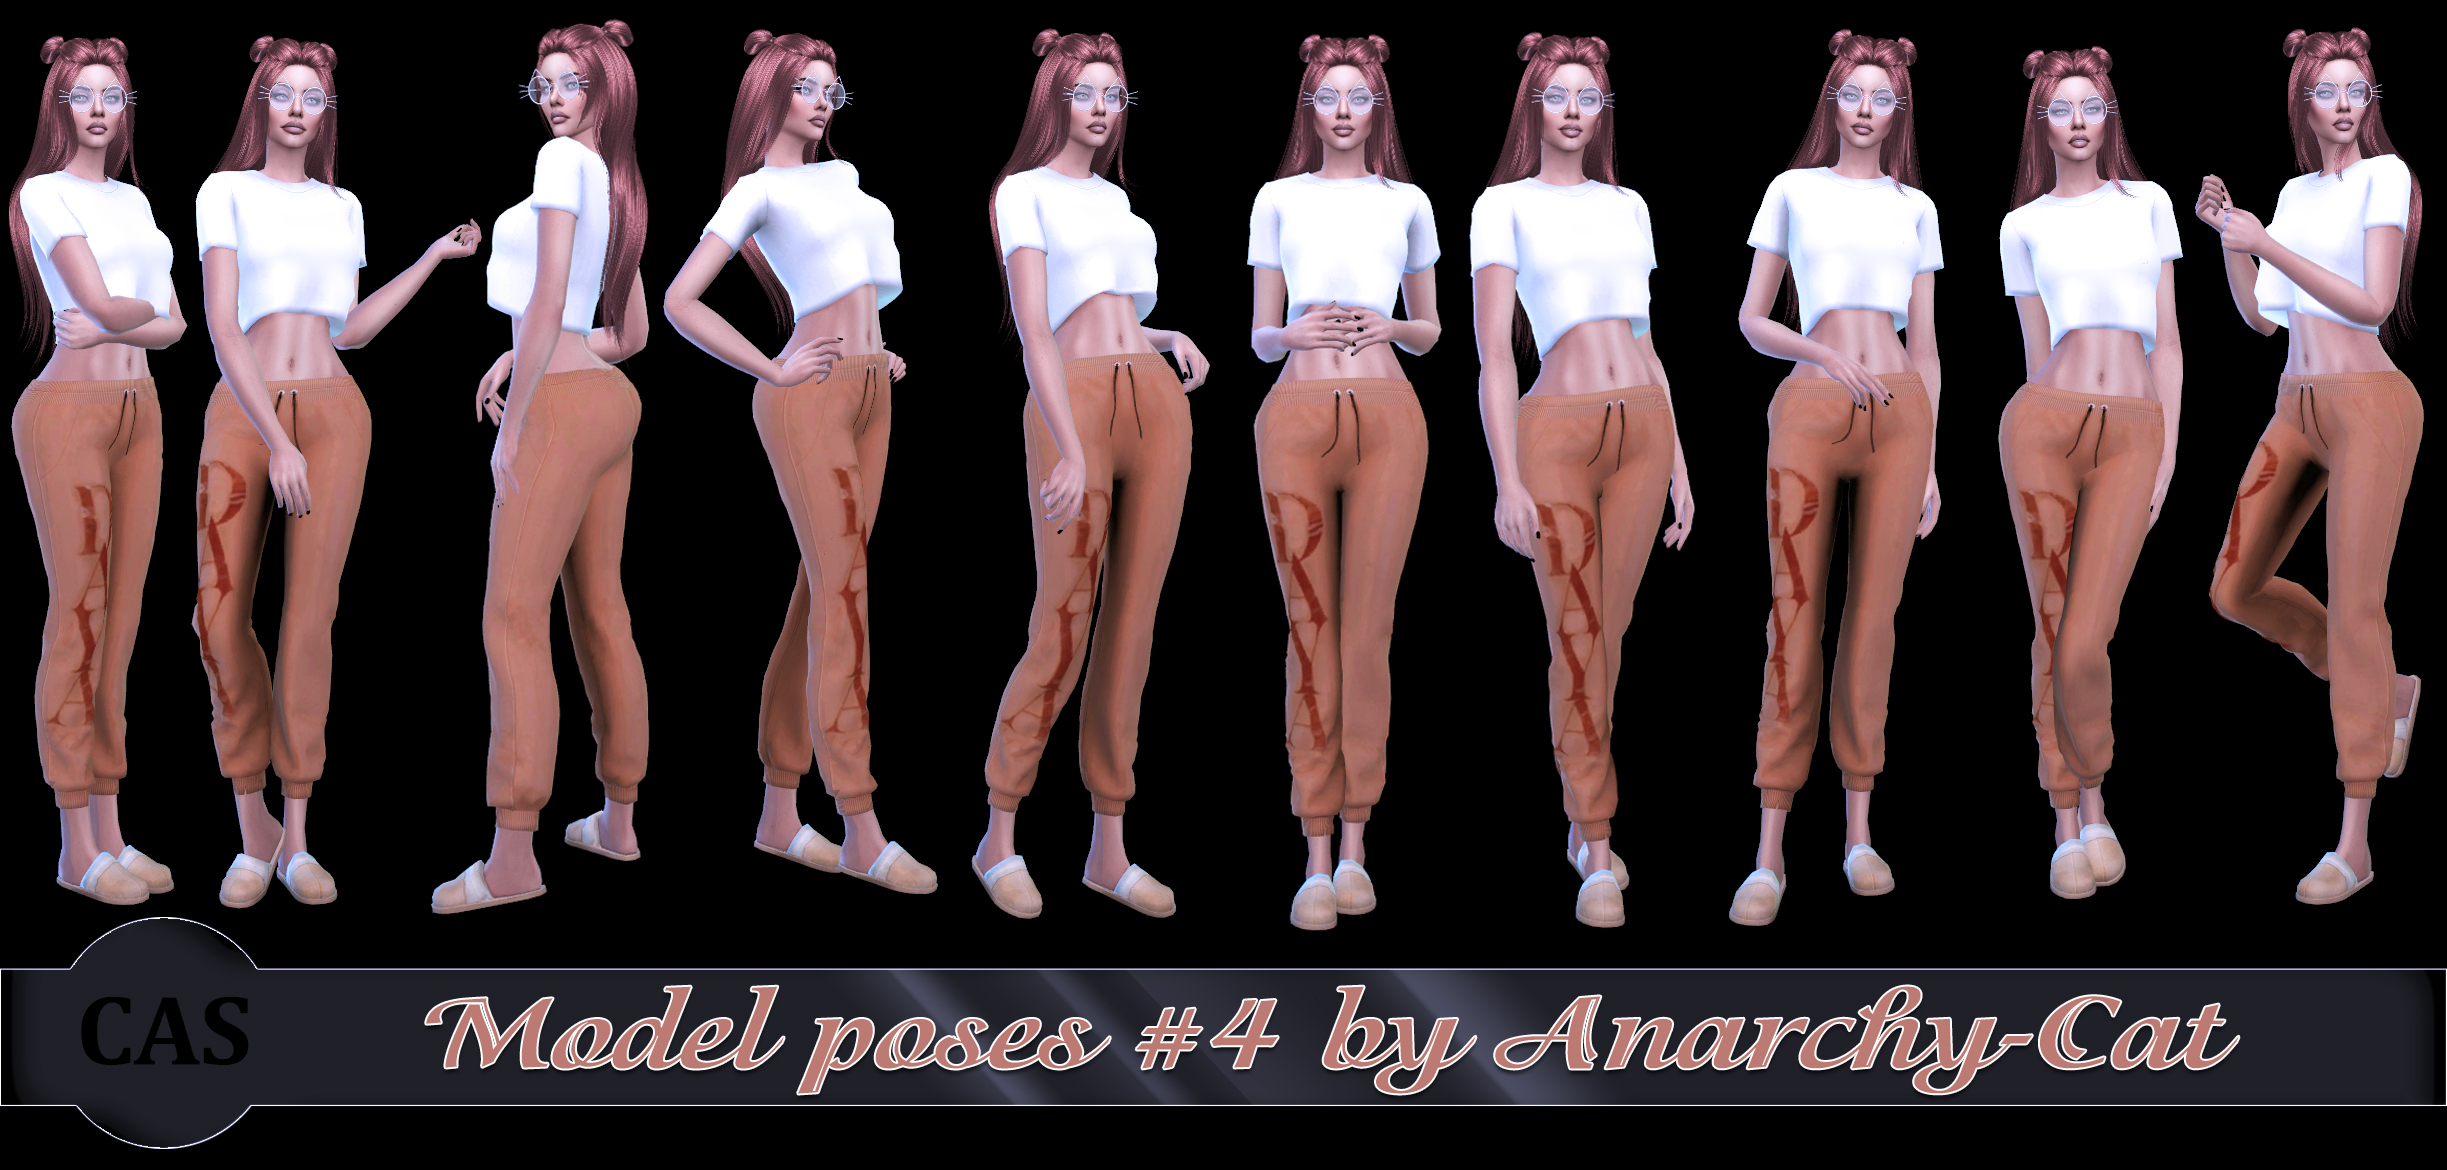 Model poses #4 by Anarchy-Cat